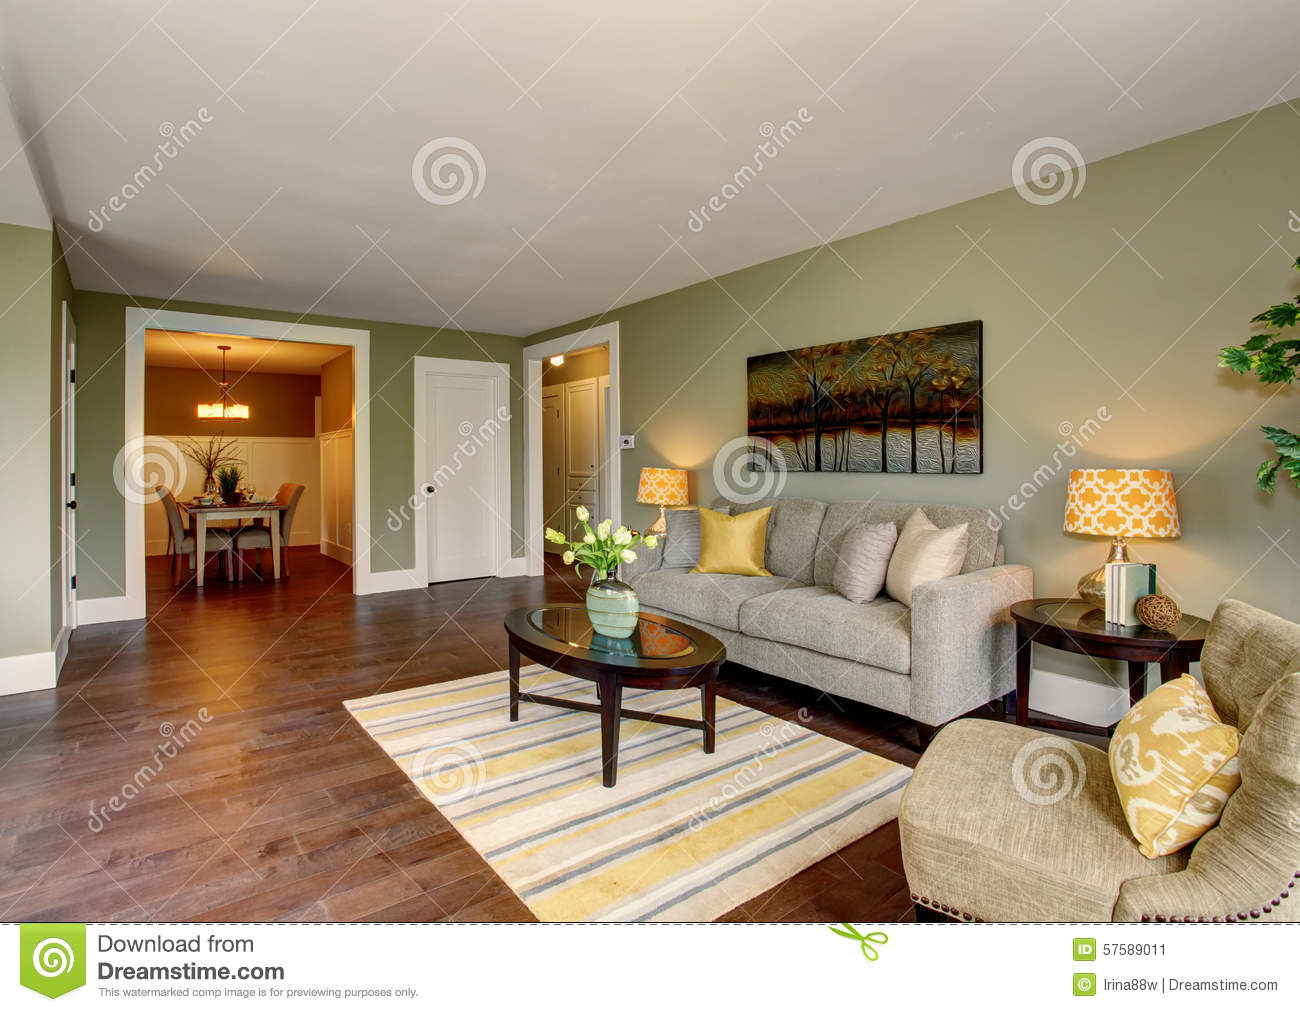 Lovely Living Room With Green And Yellow Theme Stock